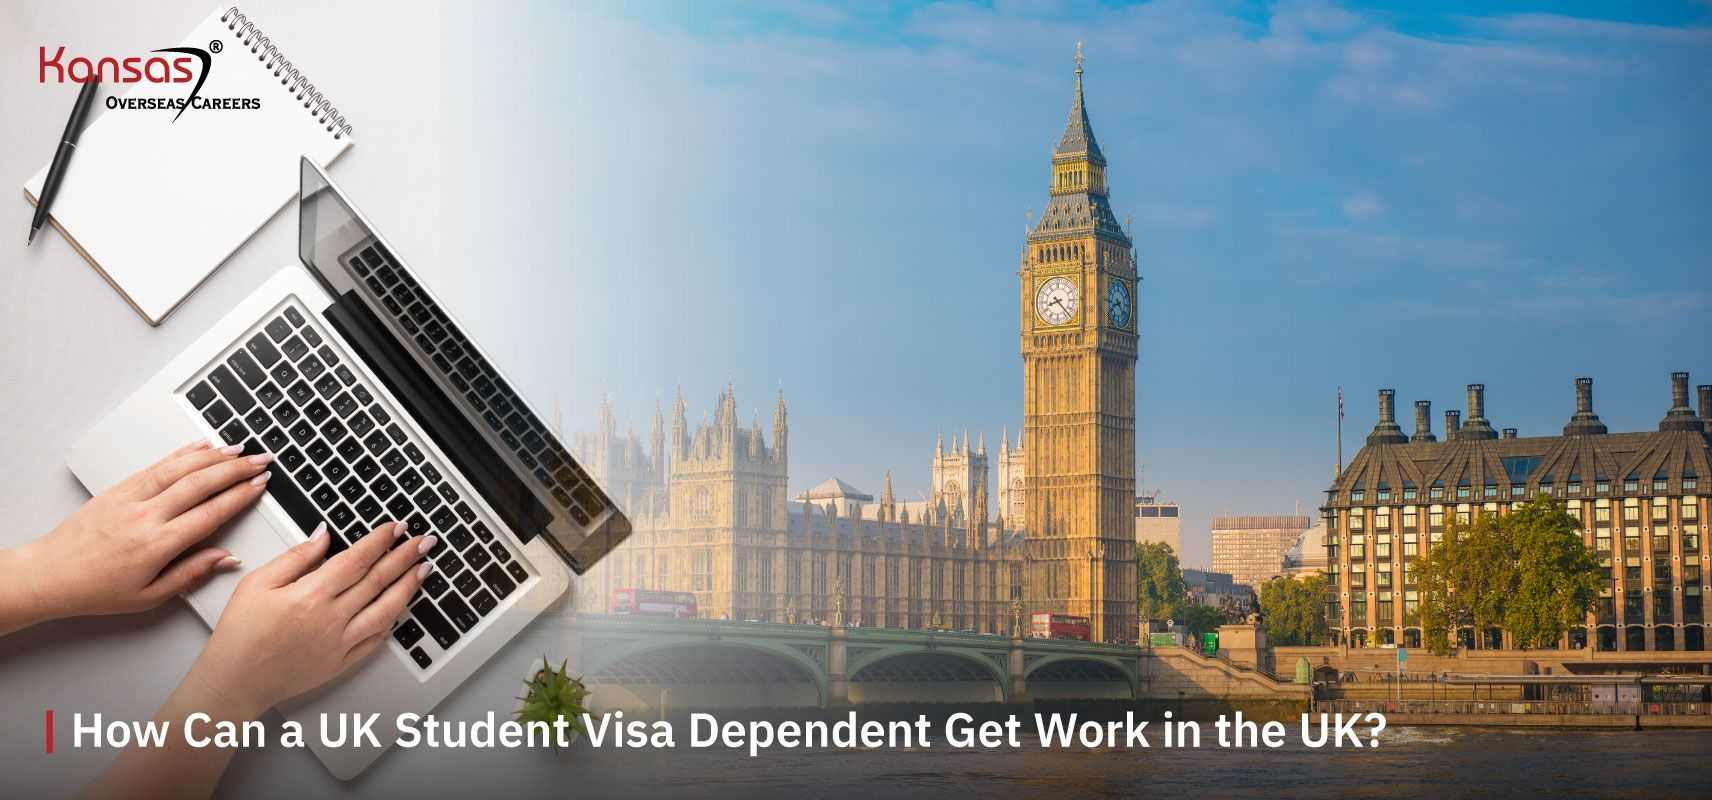 How-Can-a-UK-Student-Visa-Dependent-Get-Work-in-the-UK-